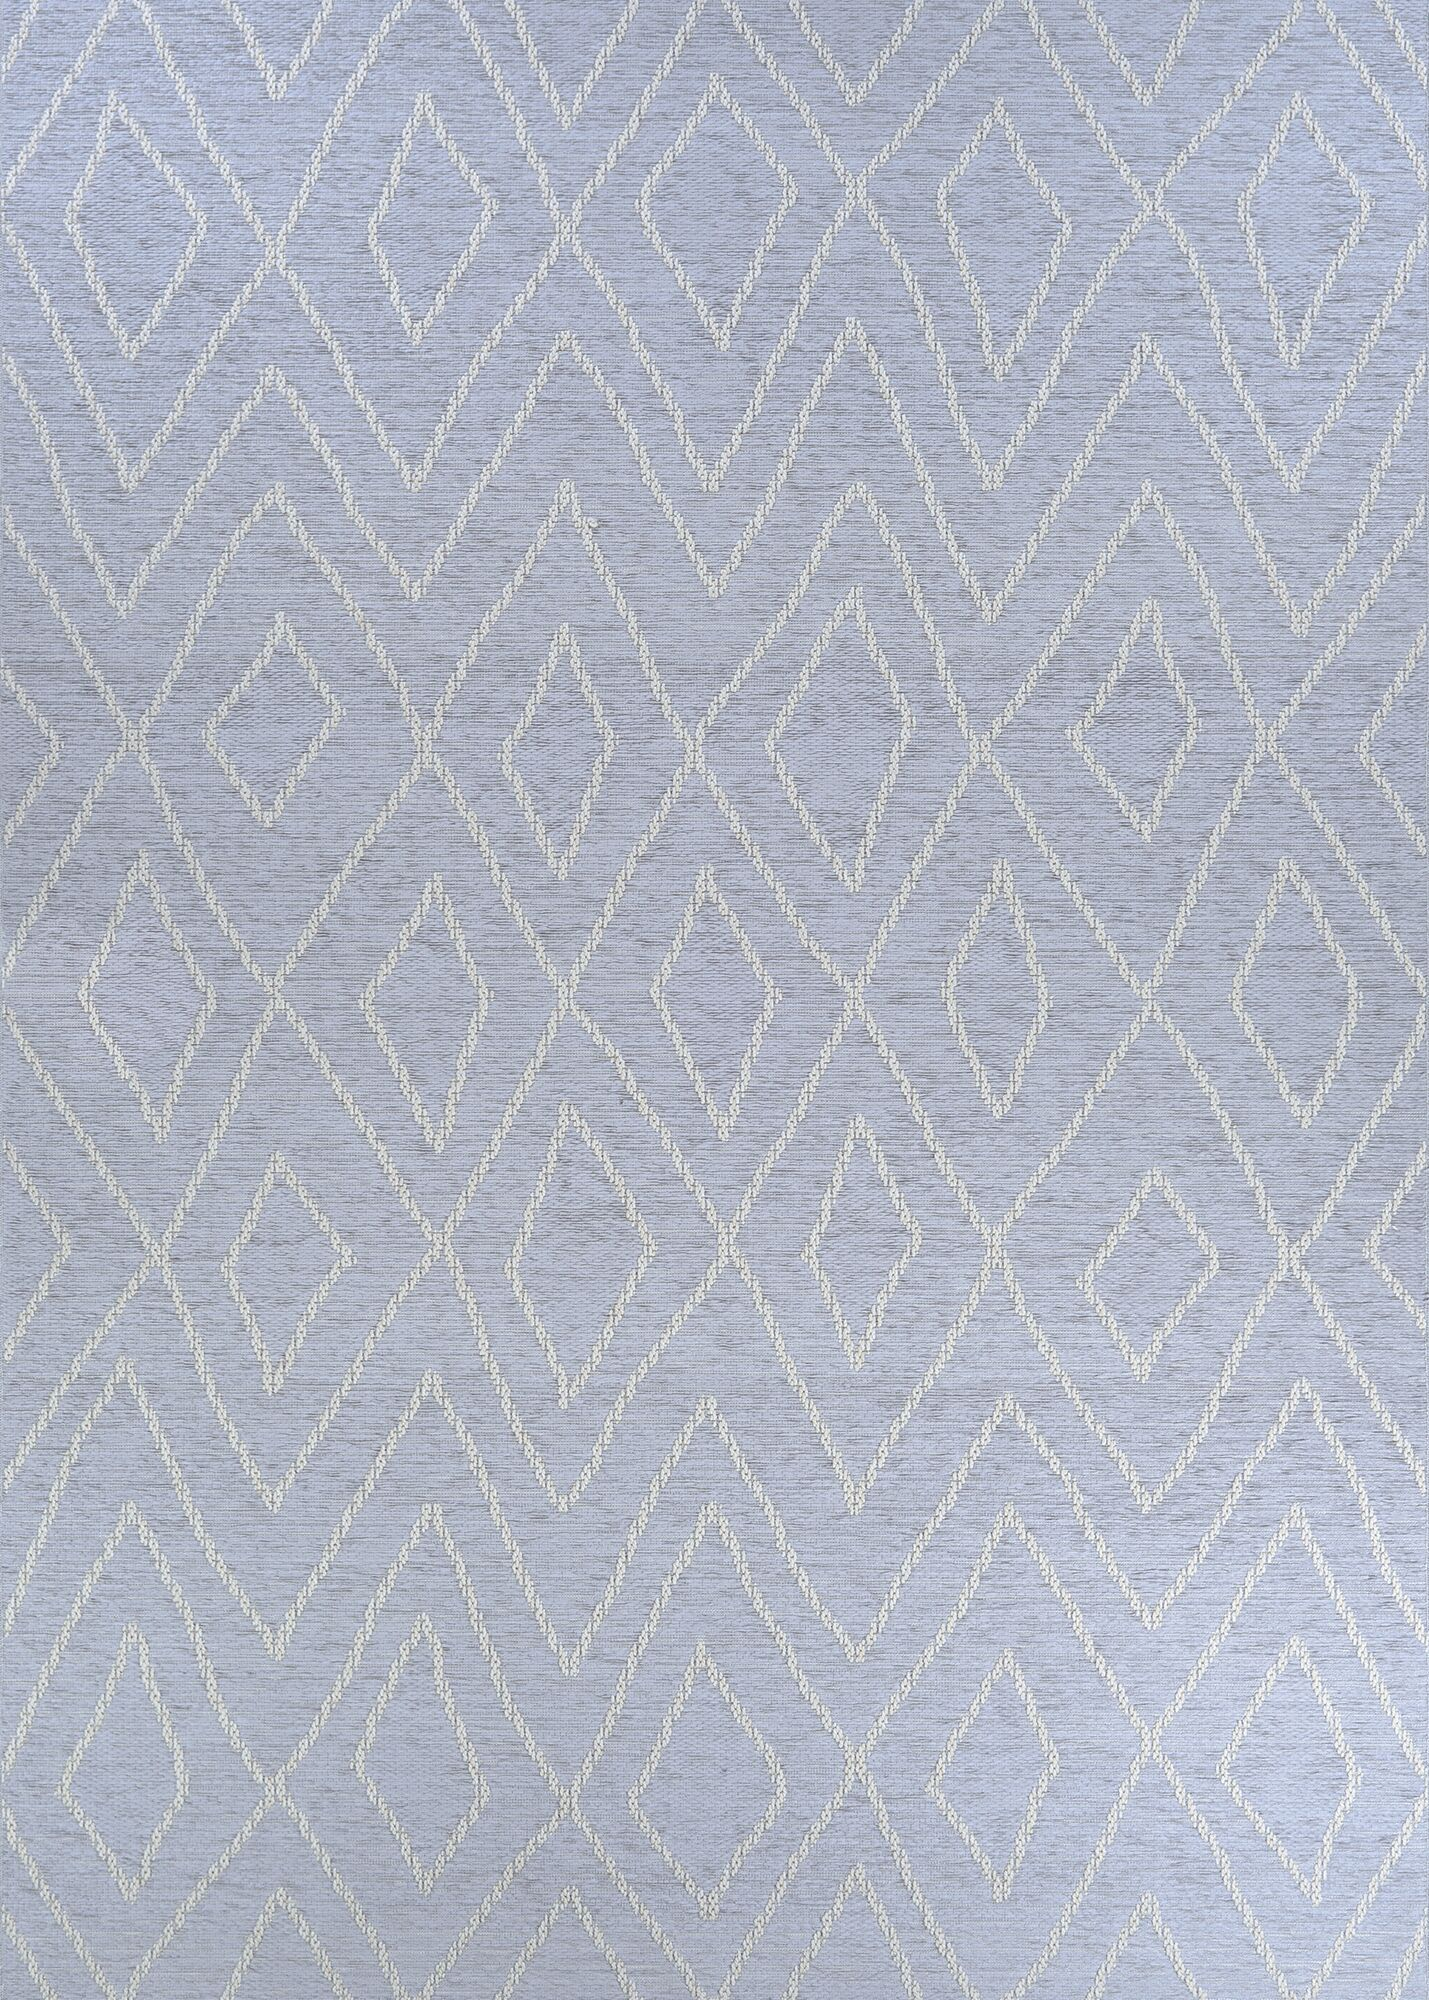 Temme Gray Indoor/Outdoor Area Rug Rug Size: Rectangle 5'1